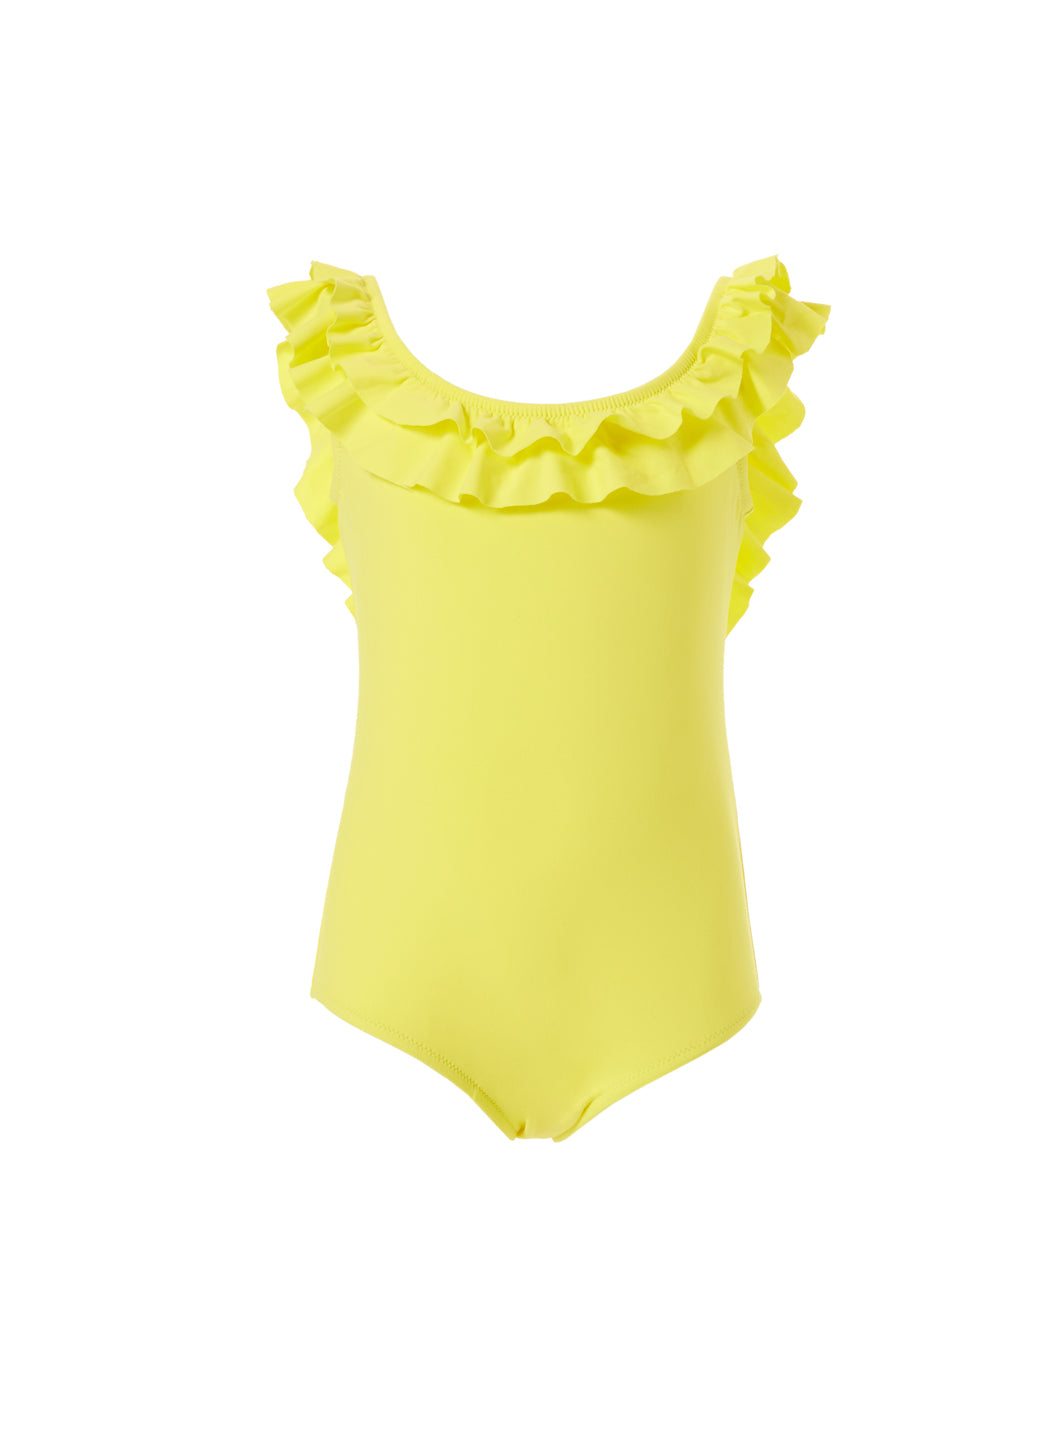 Baby Missy Yellow Over the Shoulder Frill Onepiece Swimsuit - Melissa Odabash Swimwear